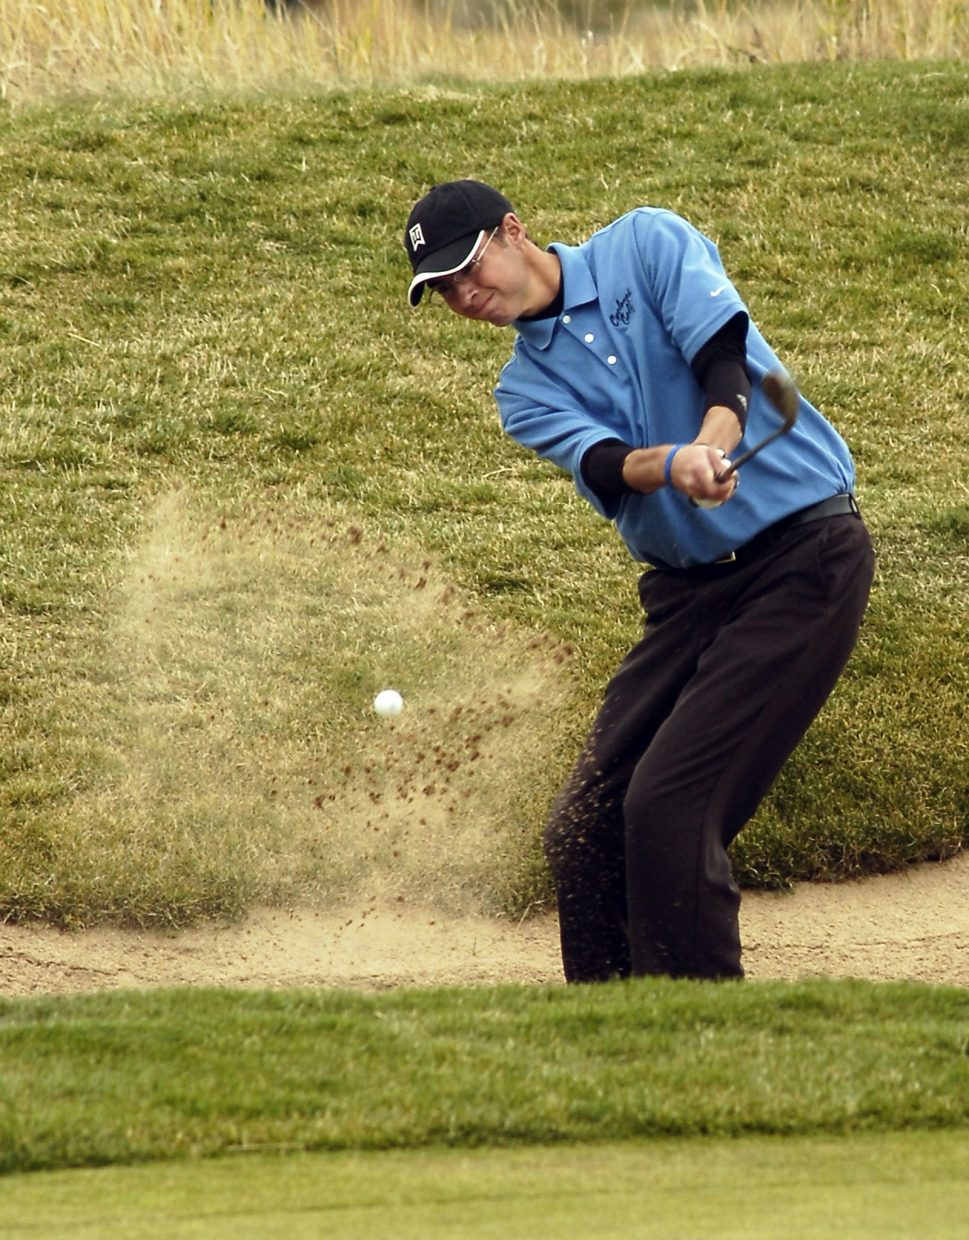 Pueblo West golfer Zane Covey chips out of the sand on the No. 9 hole at Steamboat Springs' Haymaker Golf Course during the Class 4A State High School Golf Championships on Monday. Covey finished the round with an 80.